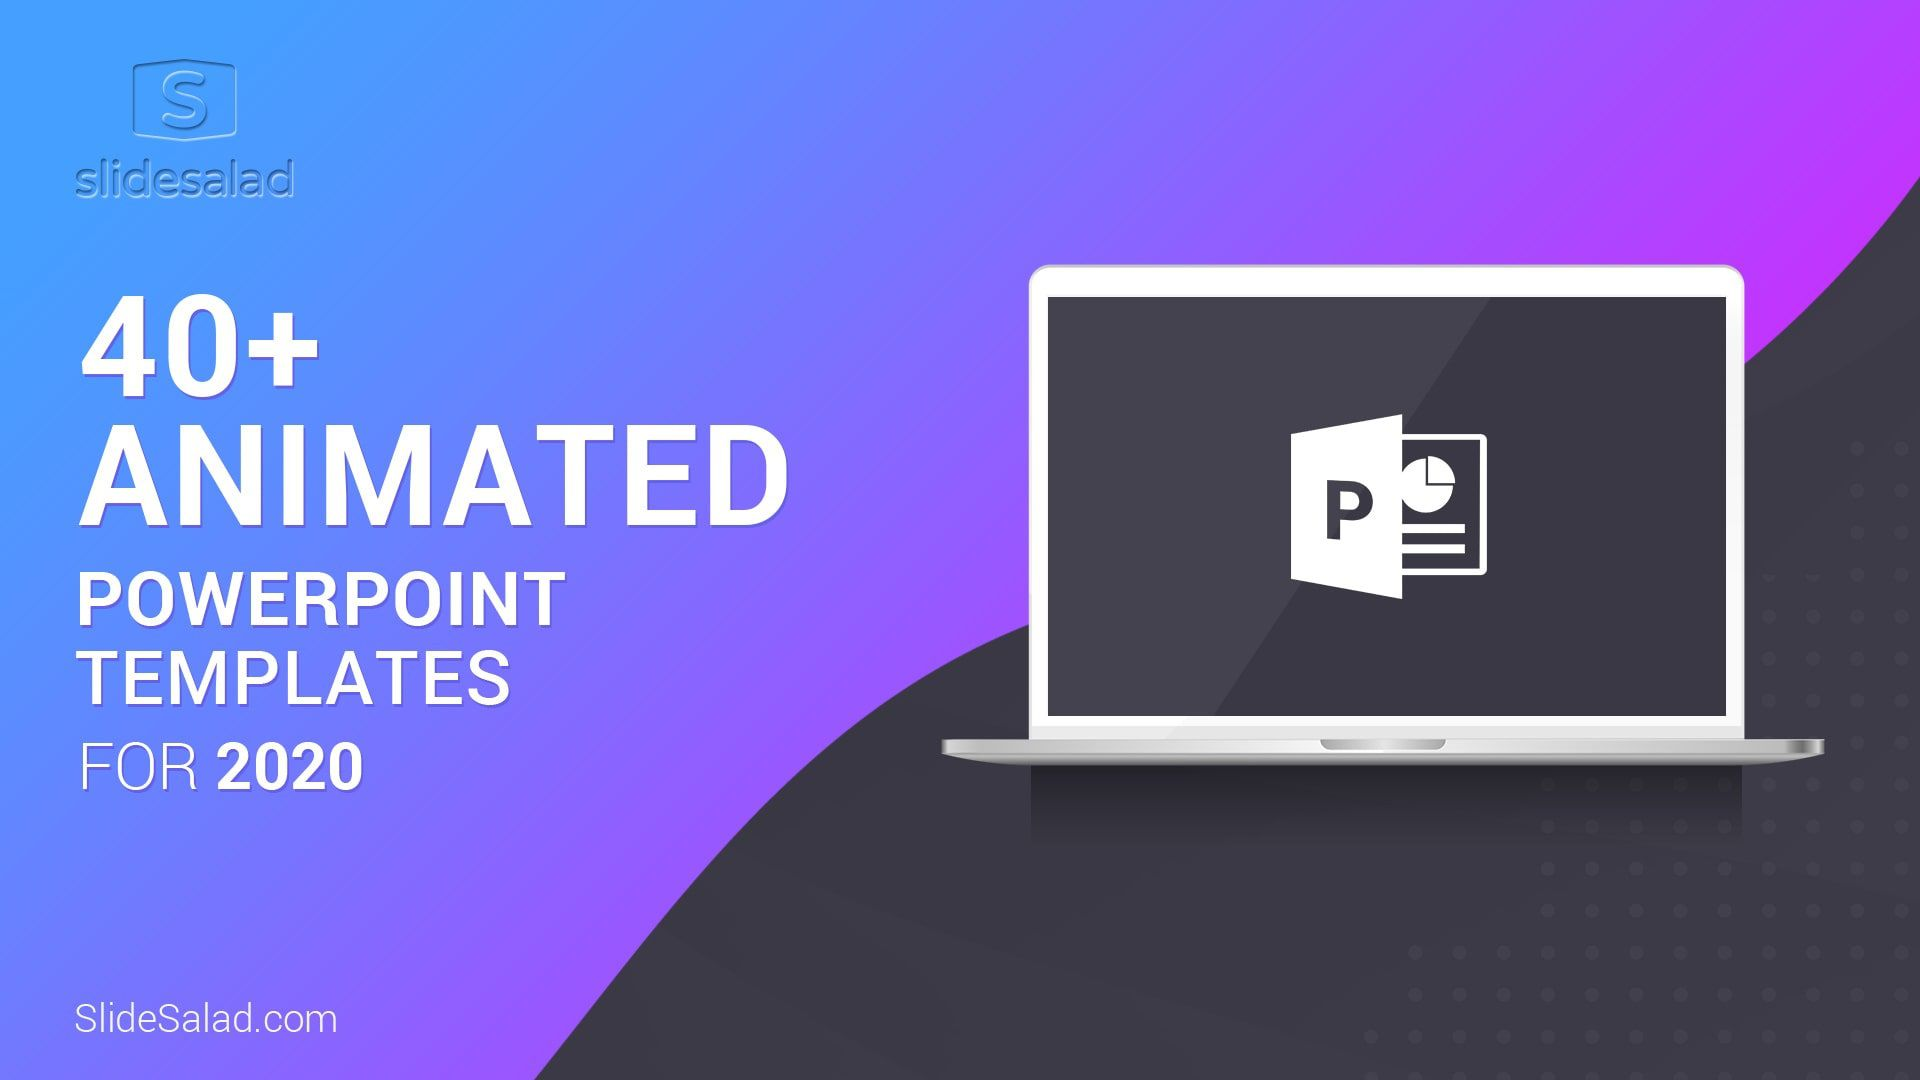 005 Top Animated Powerpoint Template Free Download 2016 Inspiration  3dFull